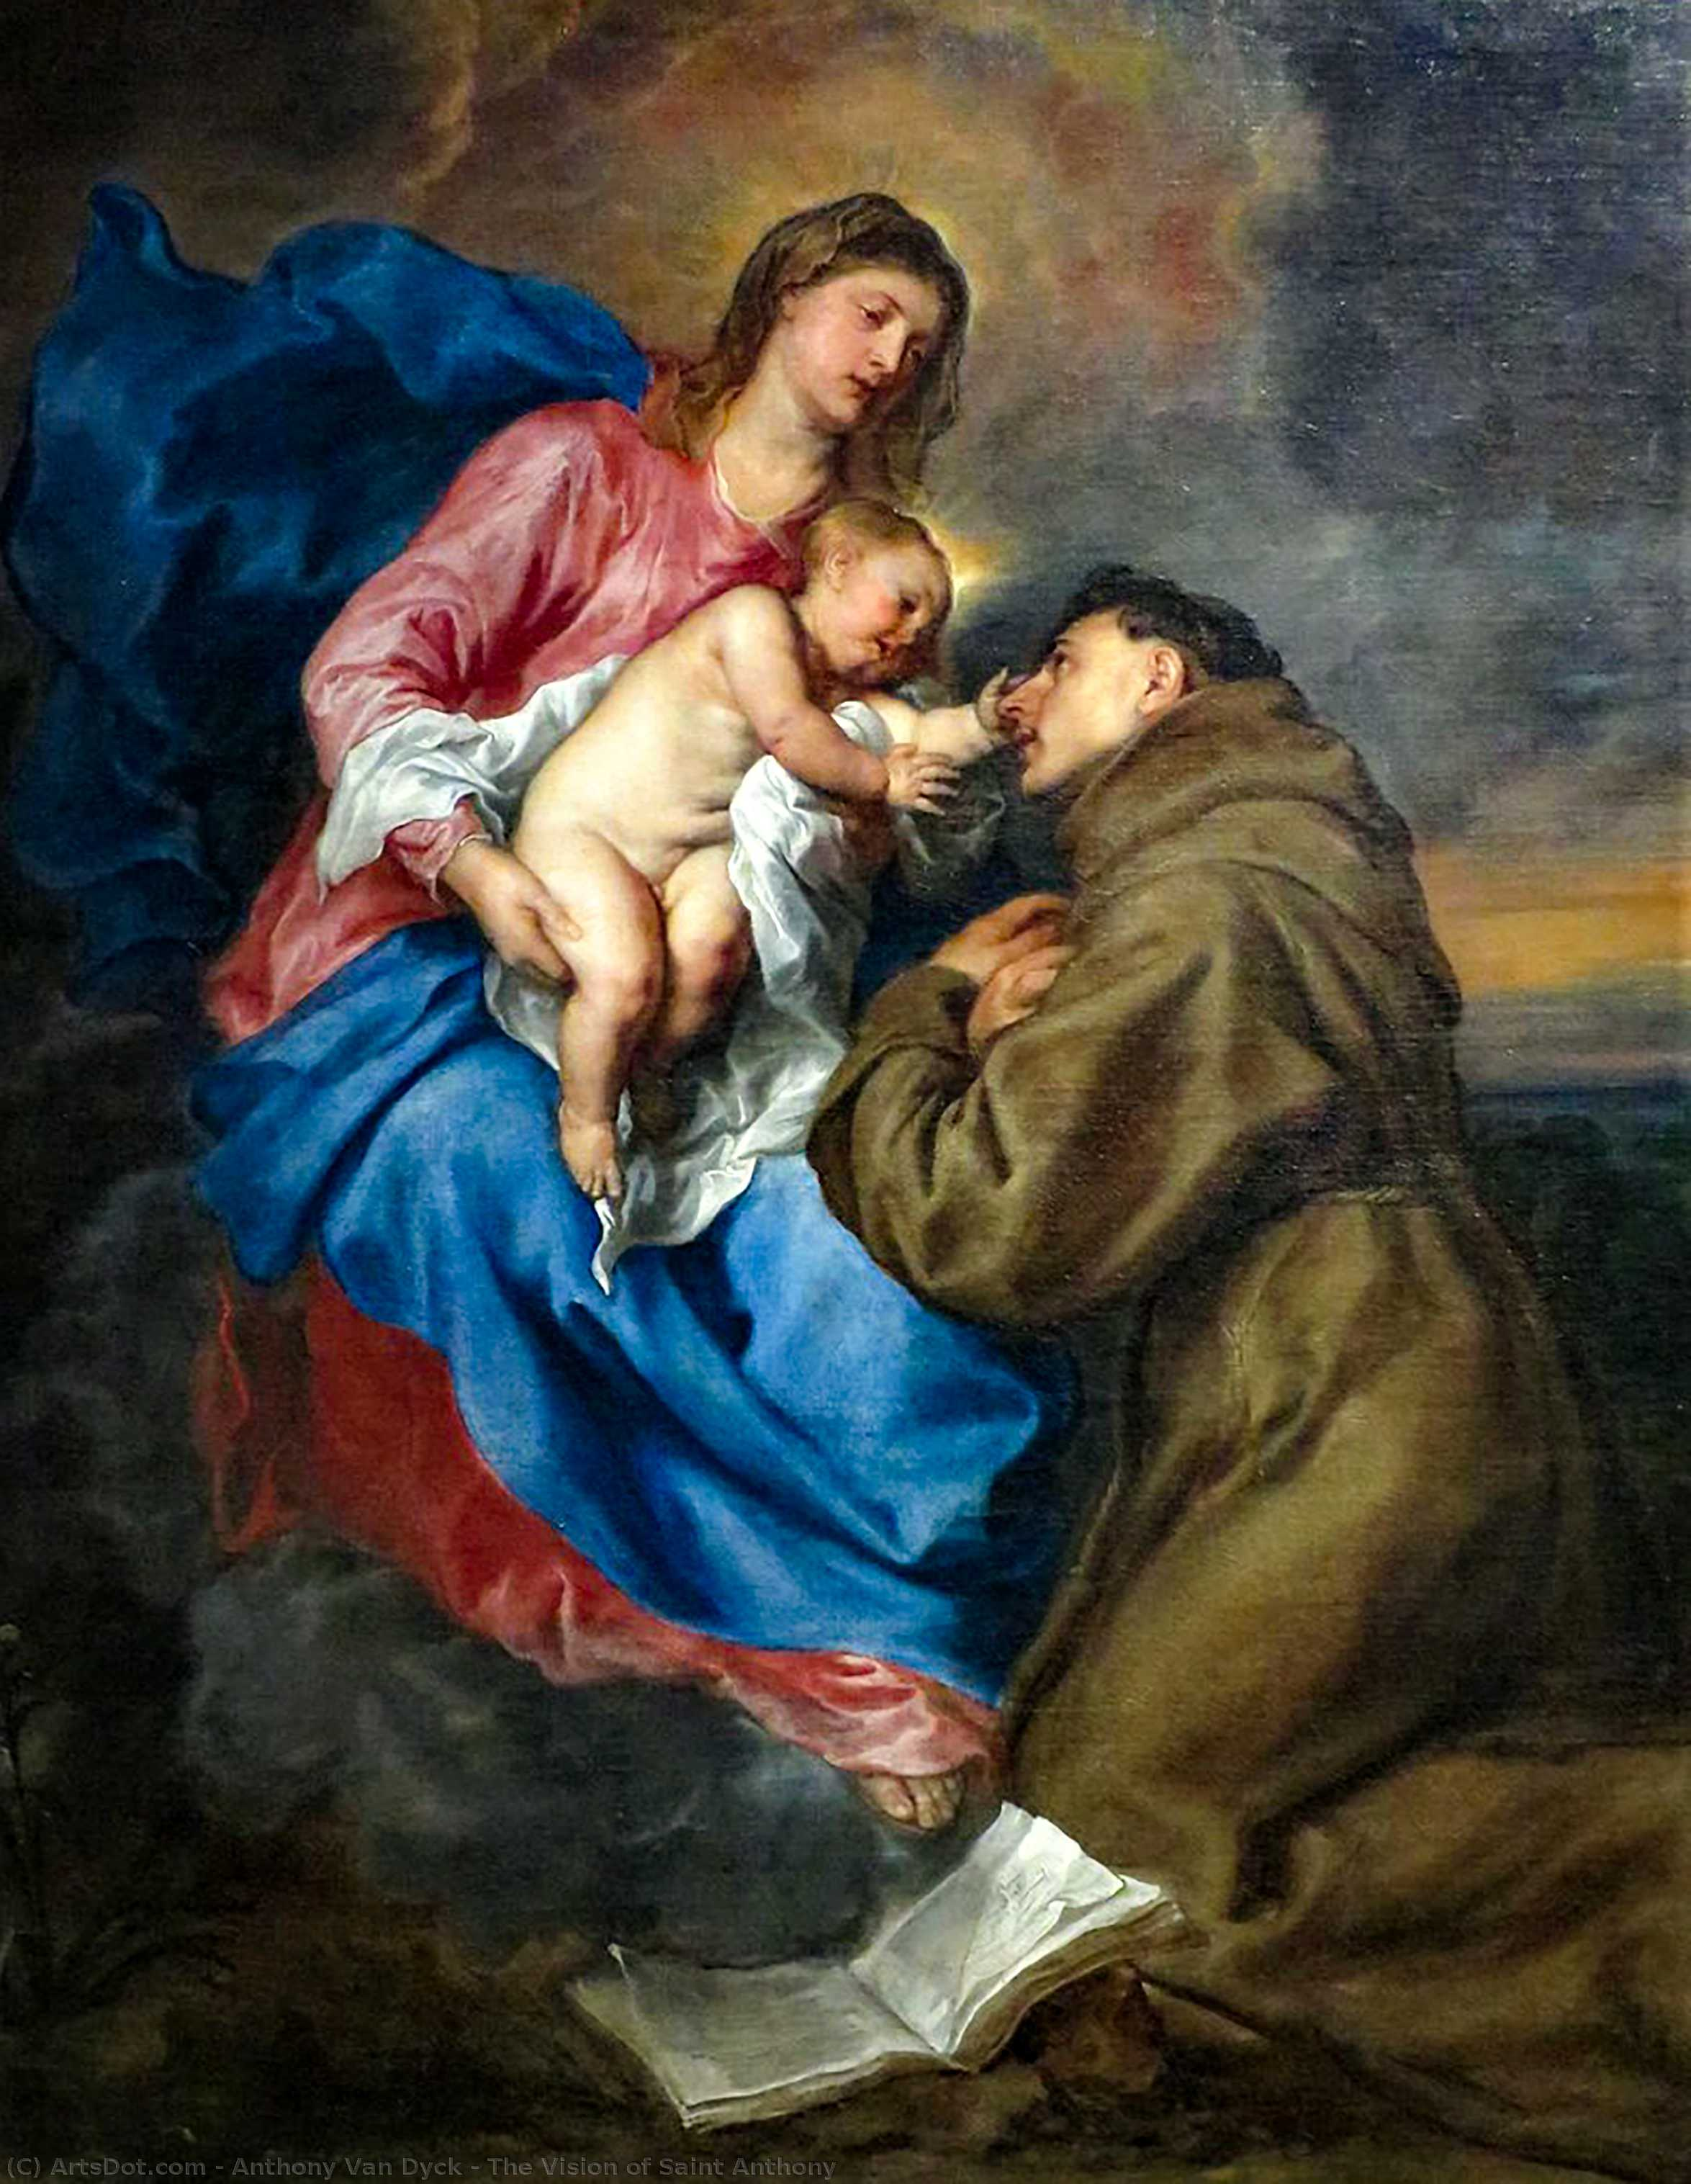 Wikioo.org - The Encyclopedia of Fine Arts - Painting, Artwork by Anthony Van Dyck - The Vision of Saint Anthony